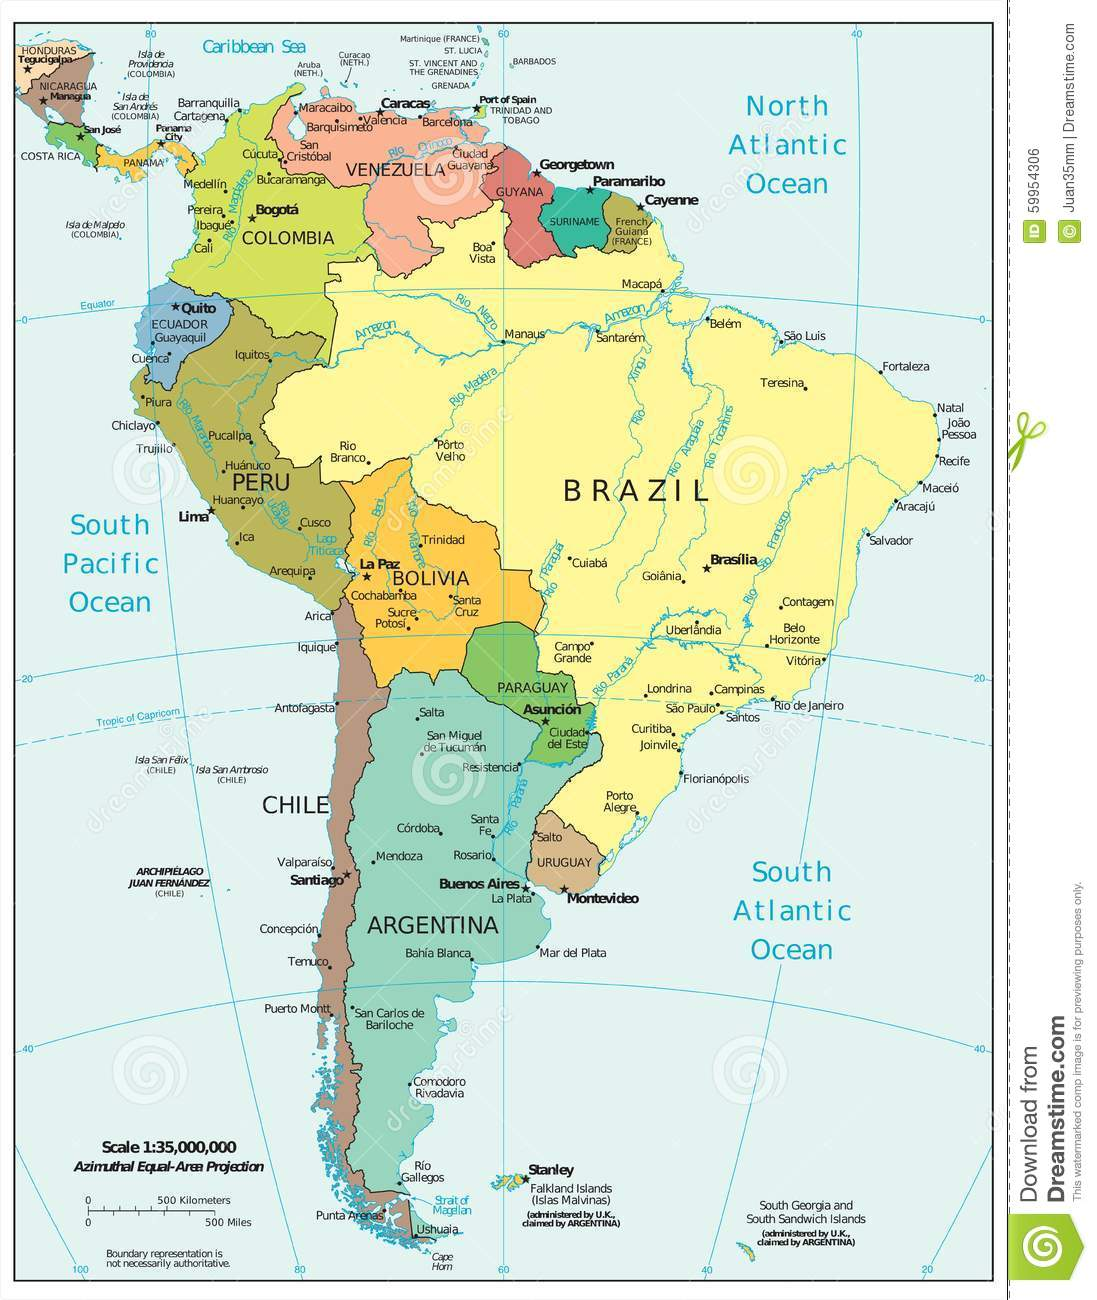 Royalty Free Ilration Download South America Region Political Divisions Map